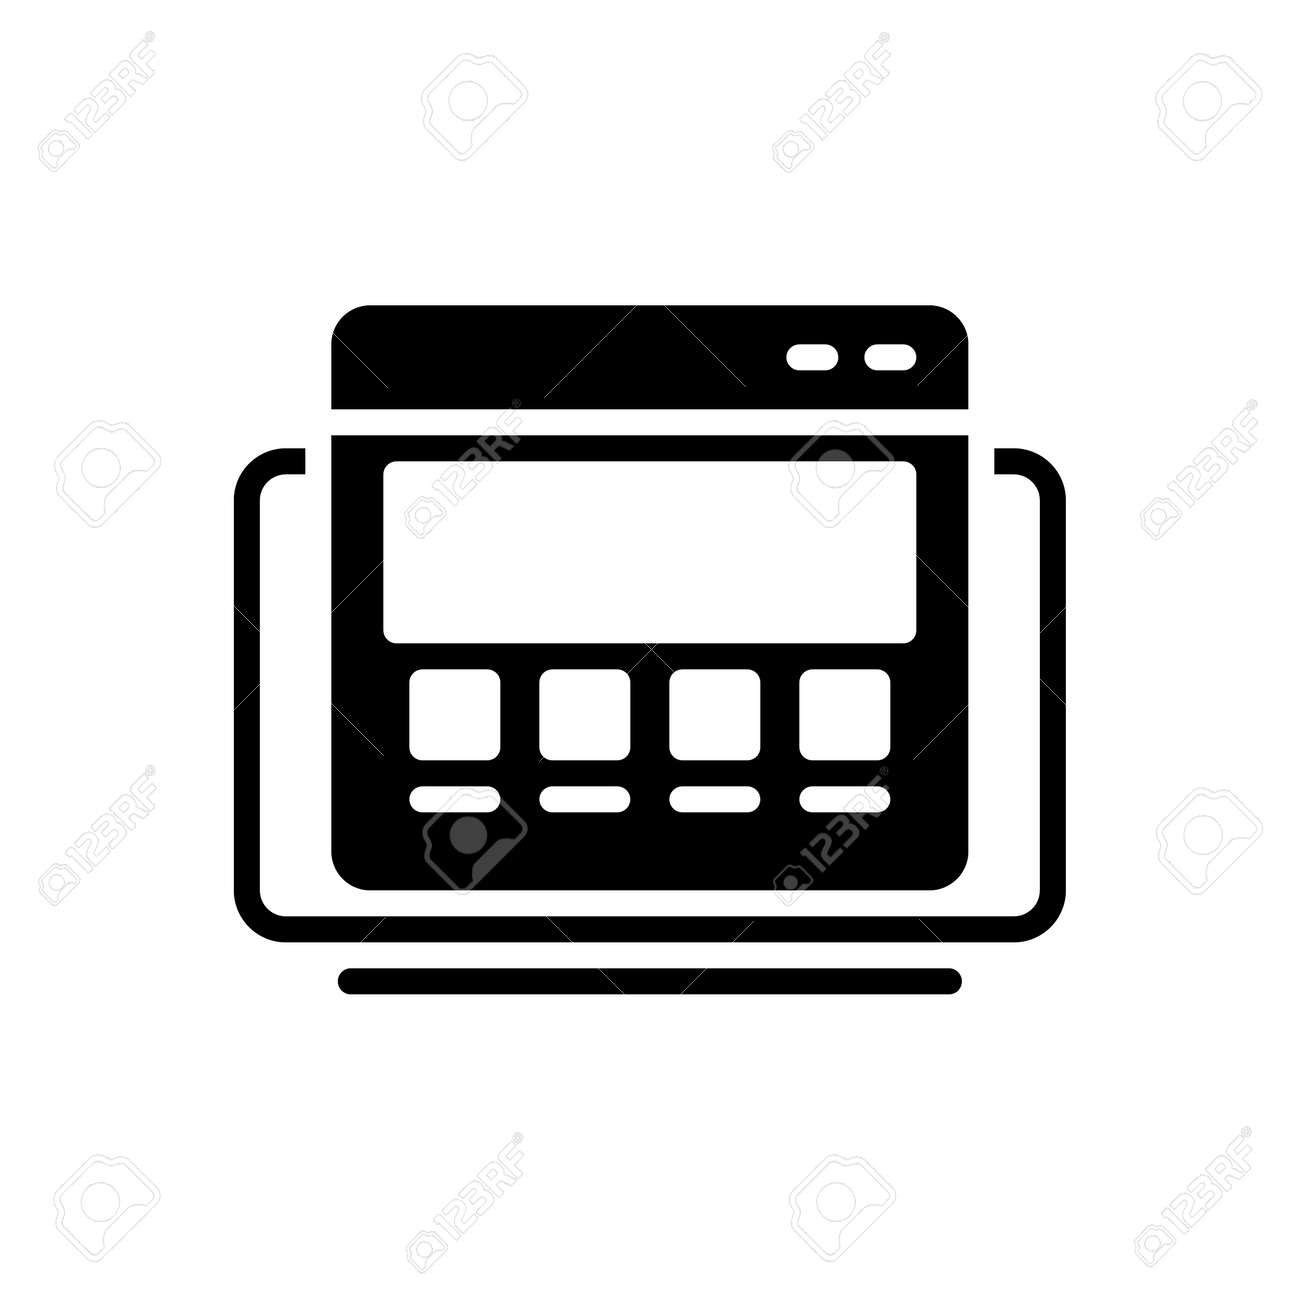 Icon for product website,product - 172215714